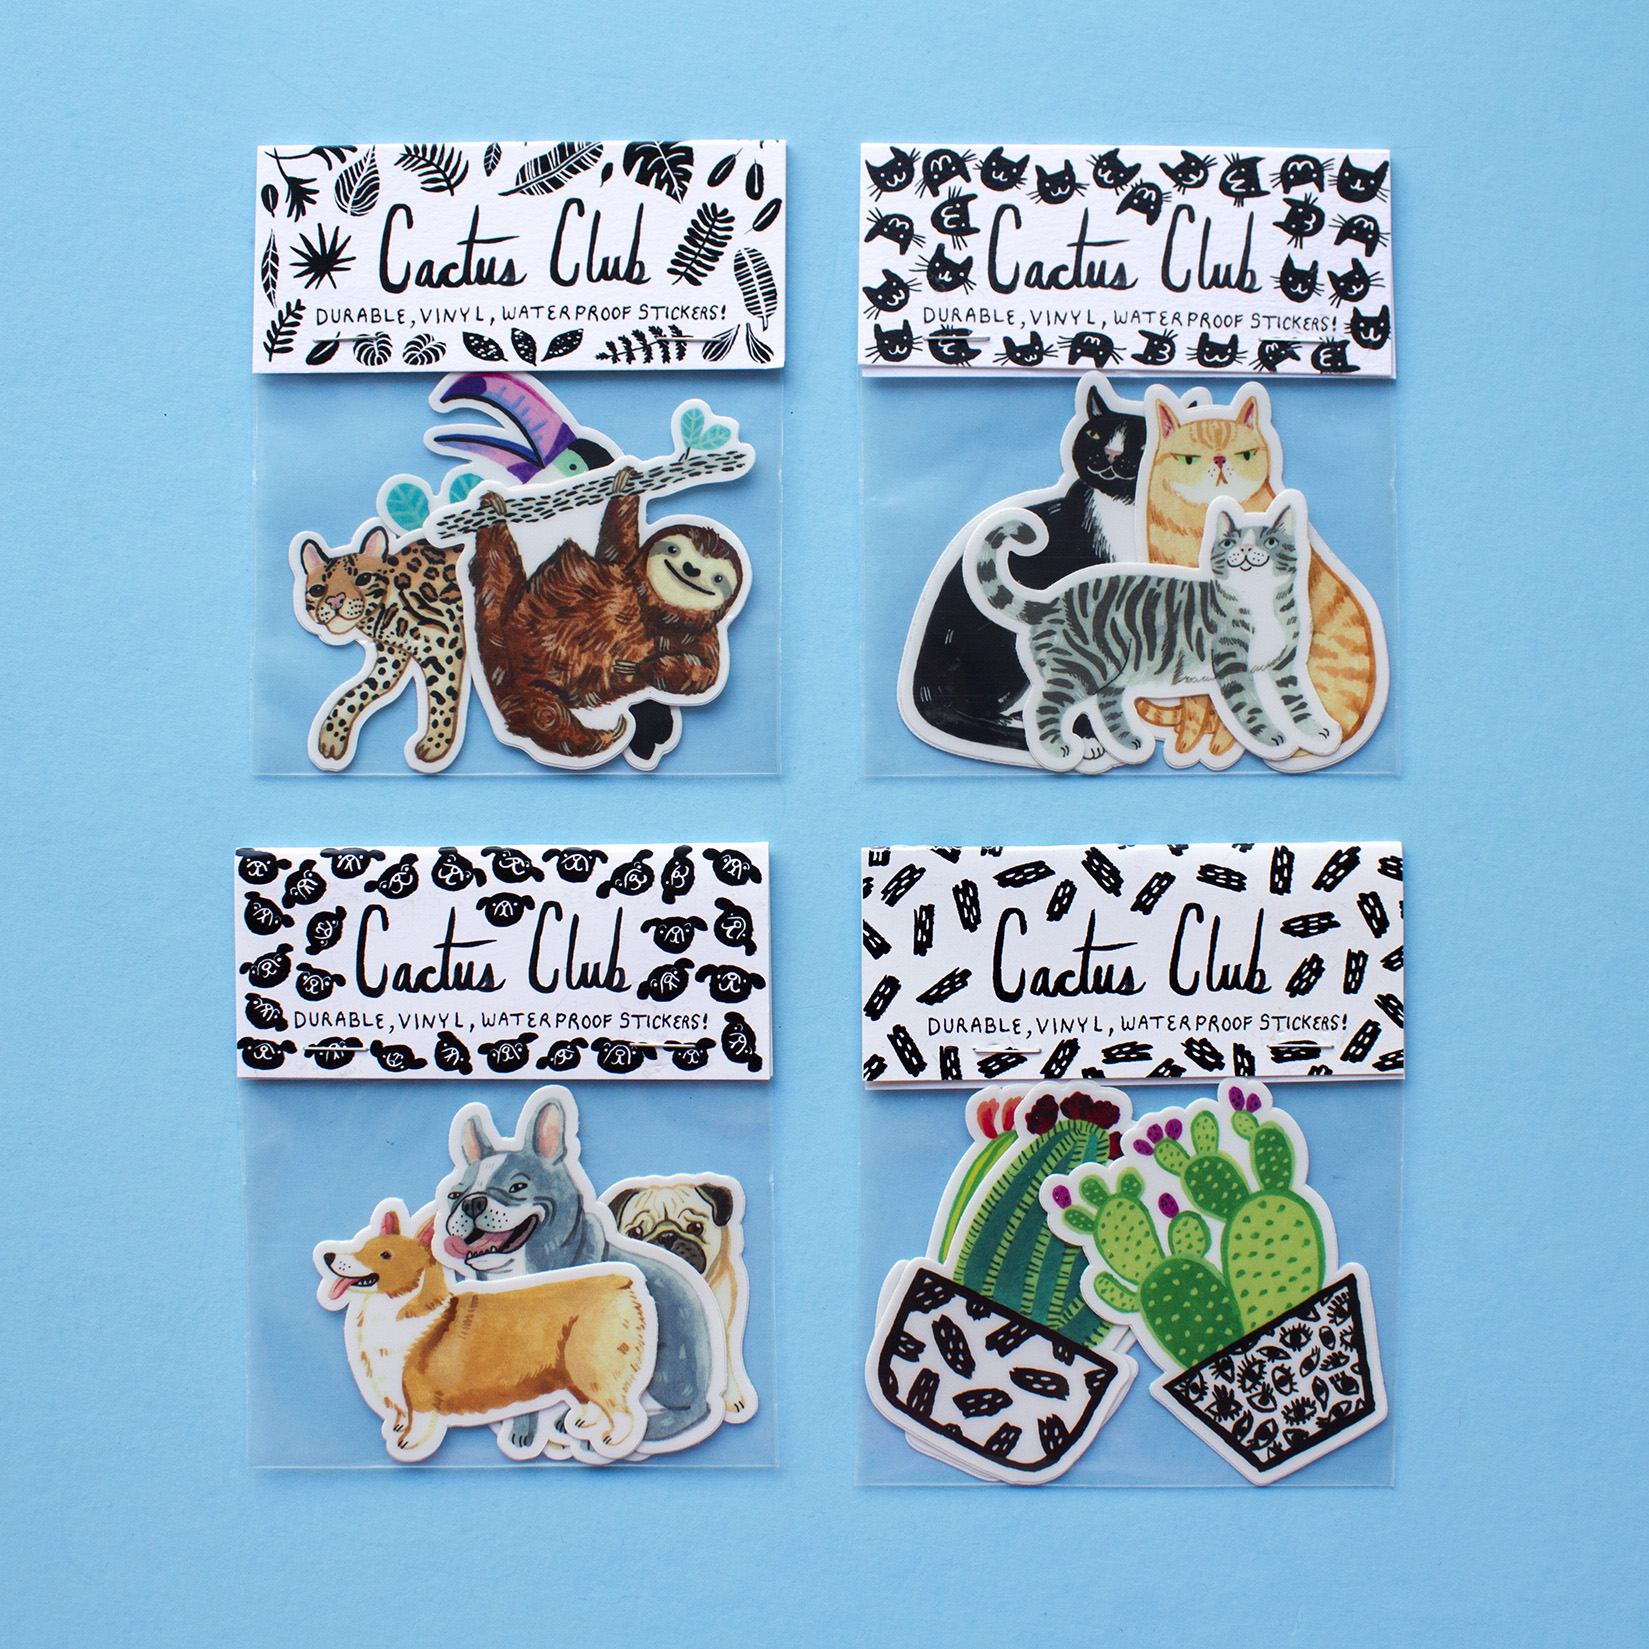 THE CUTEST STICKERS EVER! which one is your fave?